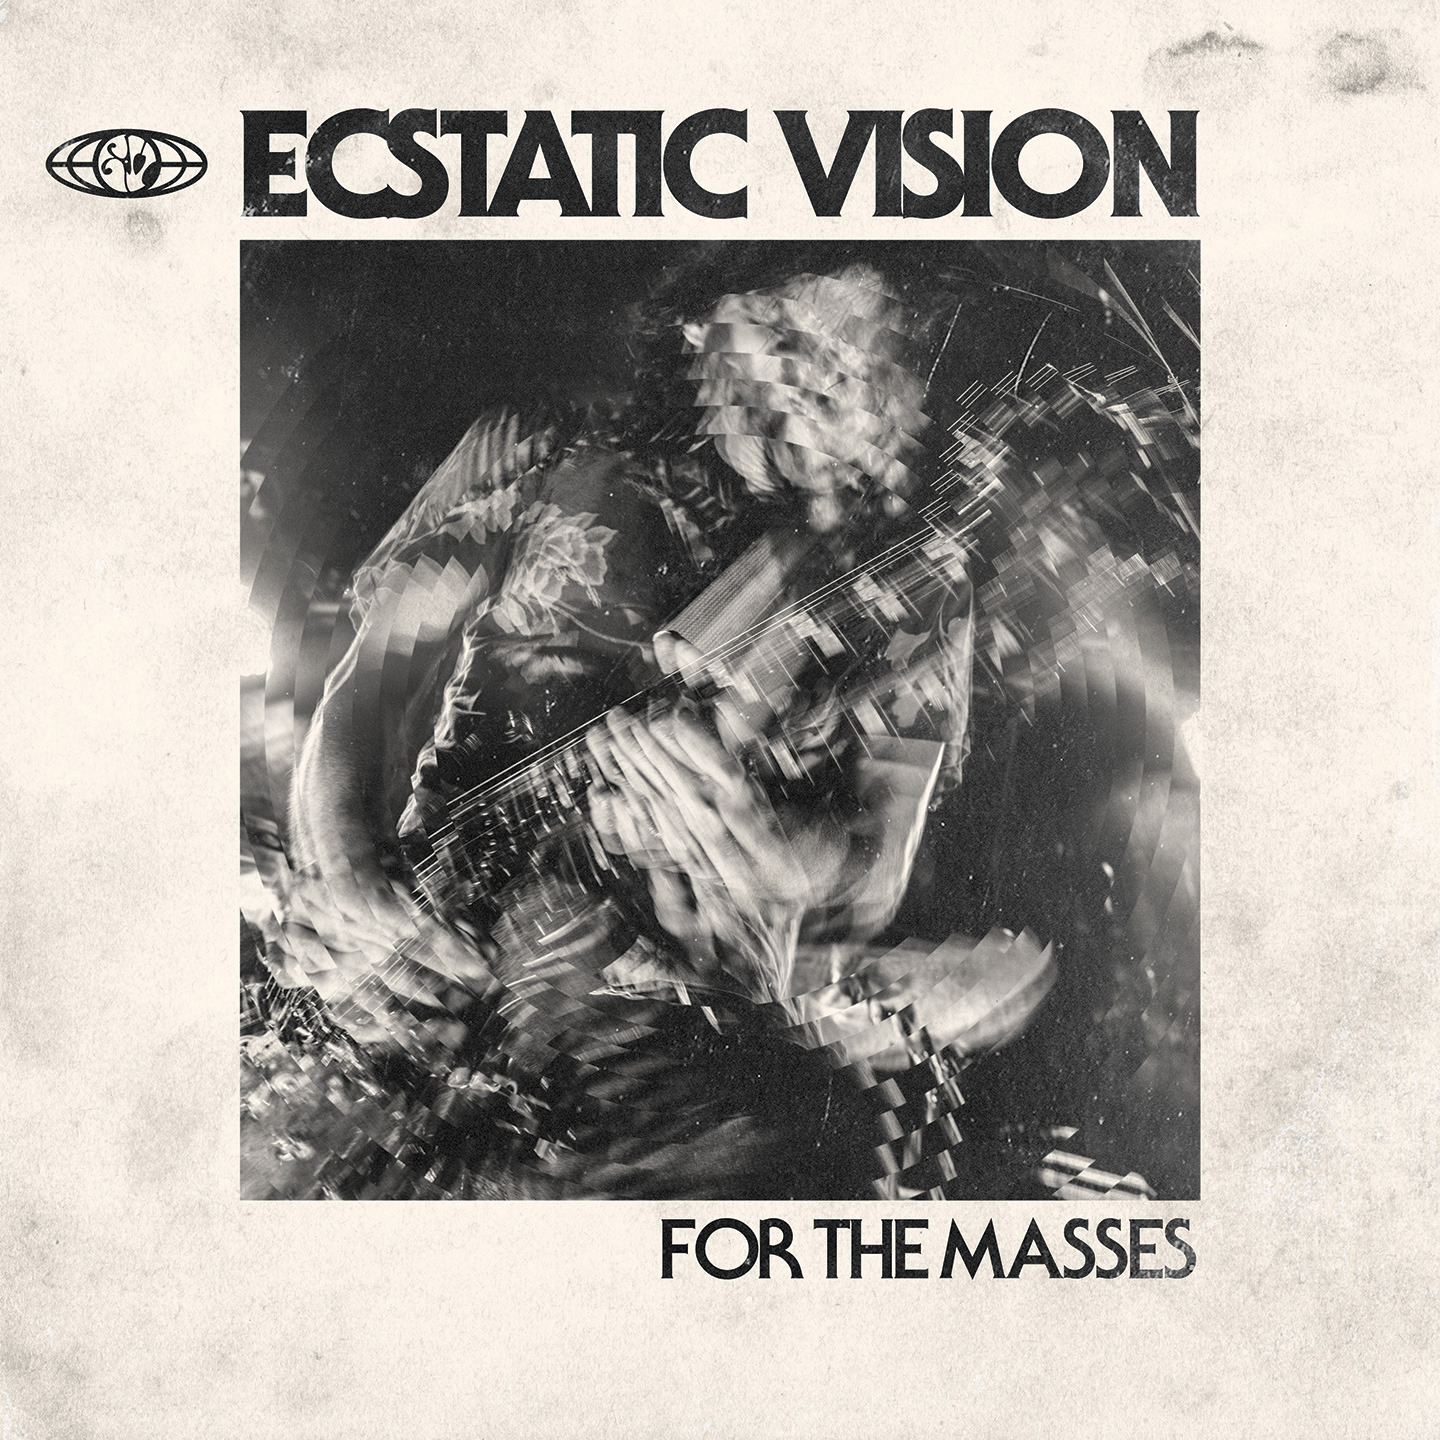 ecstatic vision for the masses